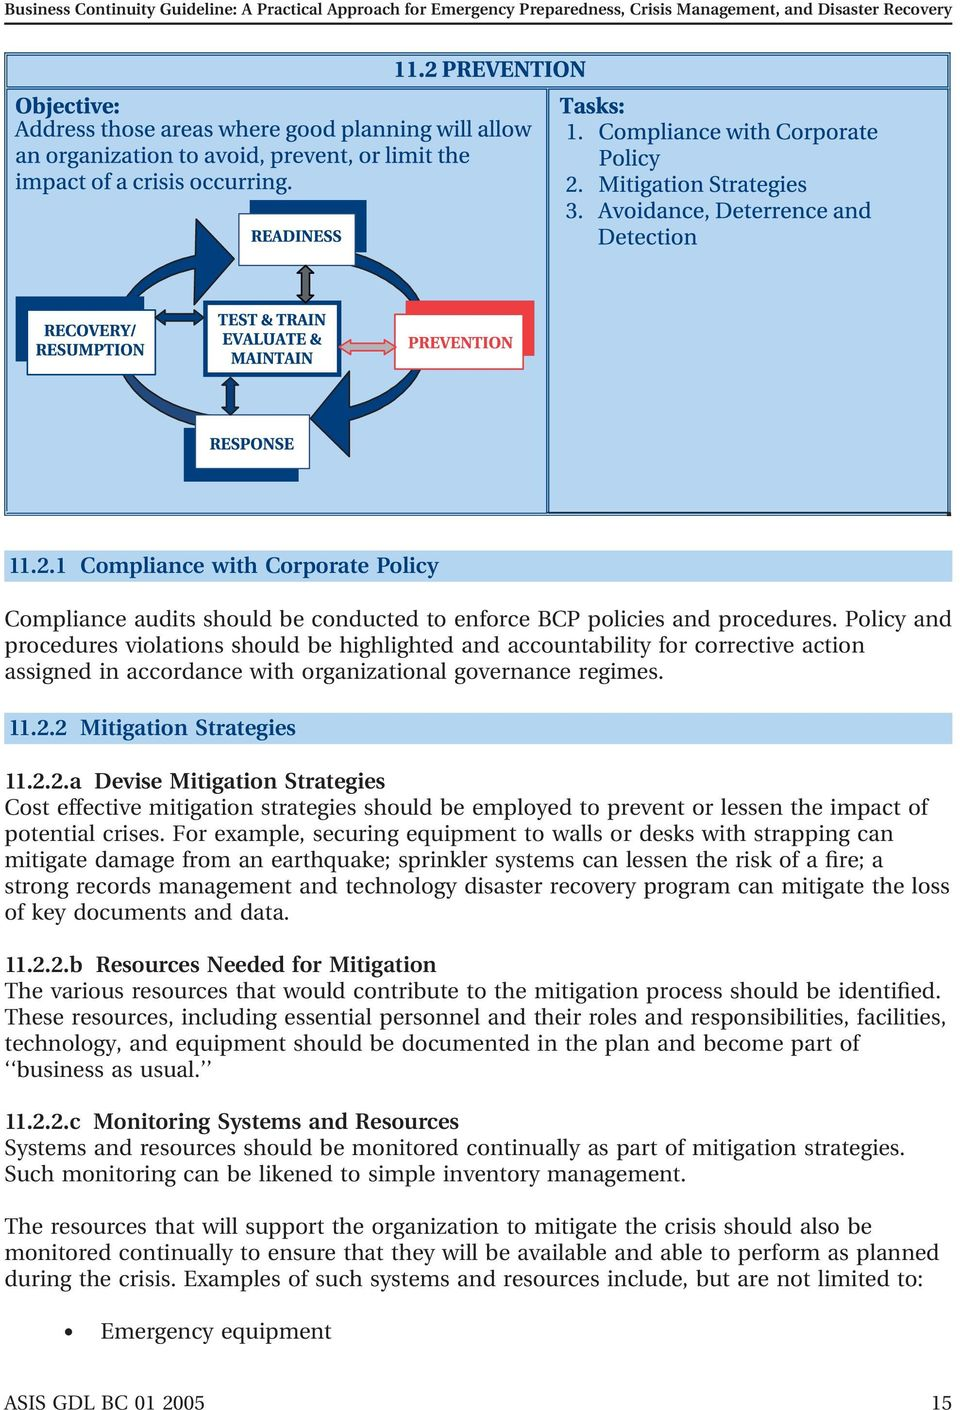 2 Mitigation Strategies 11.2.2.a Devise Mitigation Strategies Cost effective mitigation strategies should be employed to prevent or lessen the impact of potential crises.